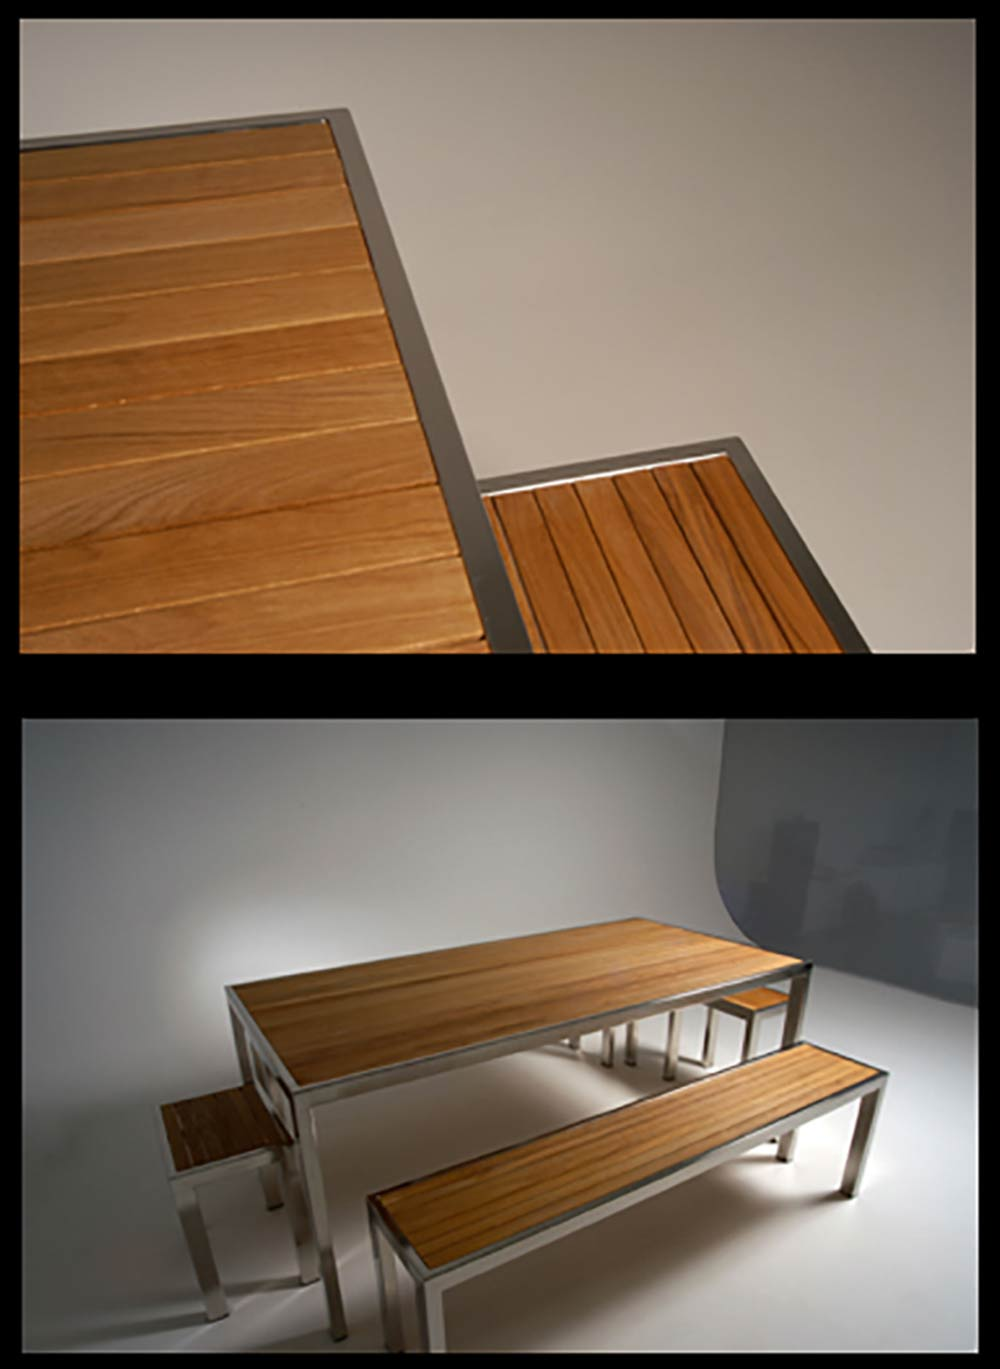 life furniture designed by artist Alexander James Hamilton founding artist of The Distil Ennui Studio®